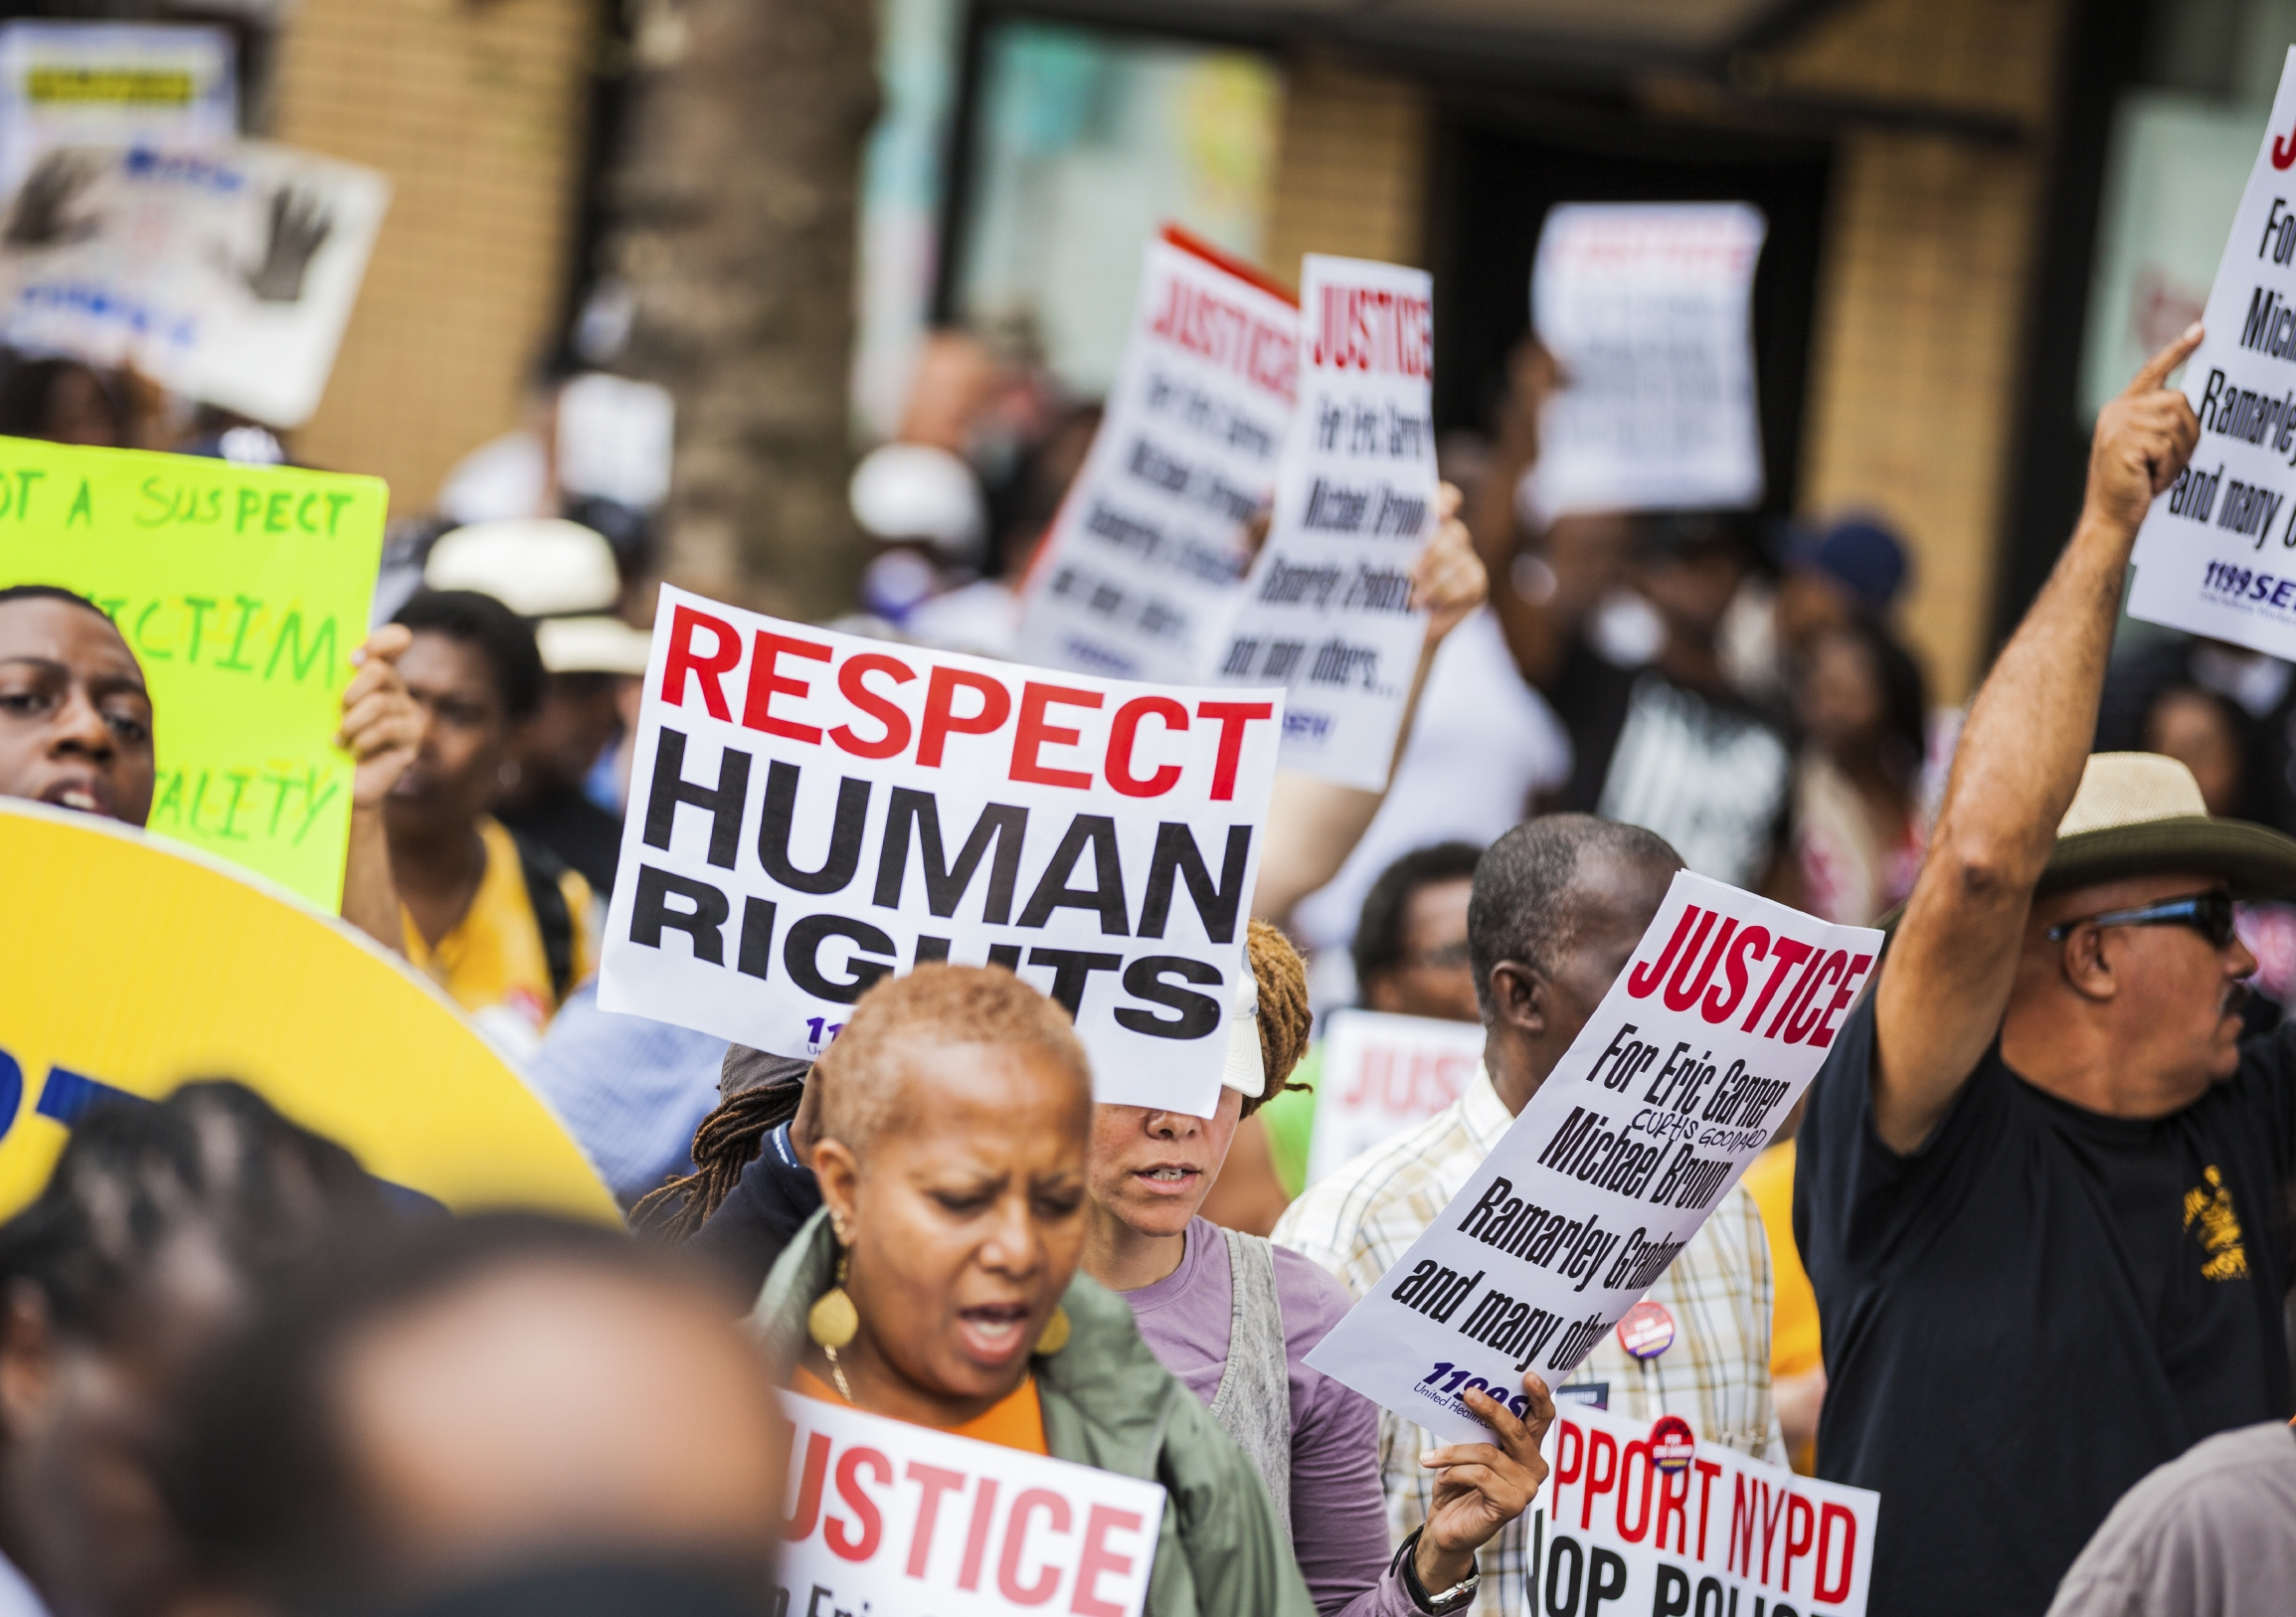 Protest against NYPD invoking the United States Bill of Rights Image: iStock